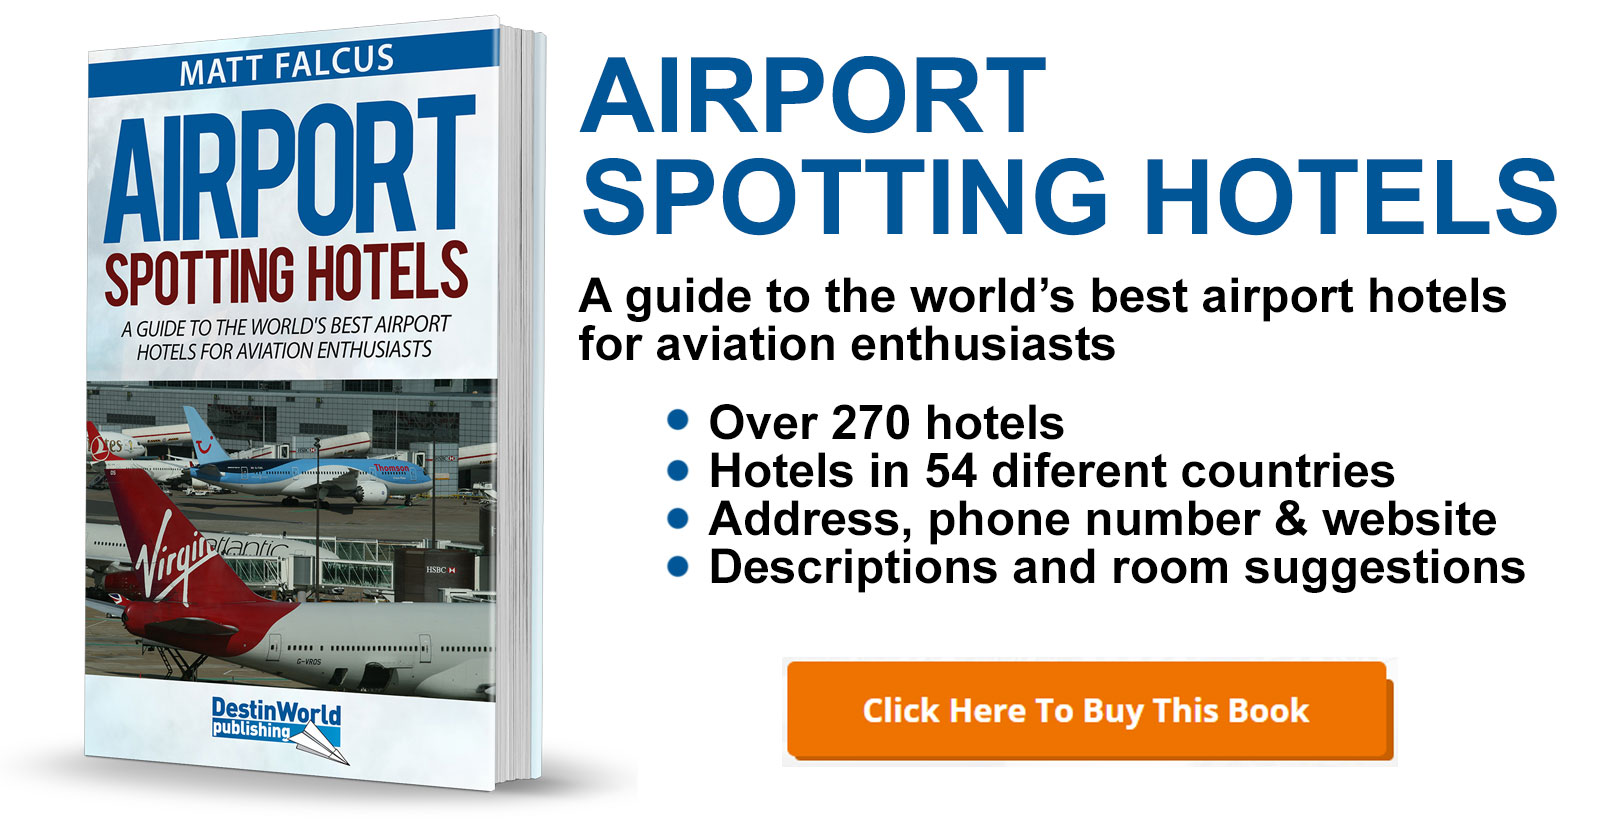 Airport Spotting Hotels Book